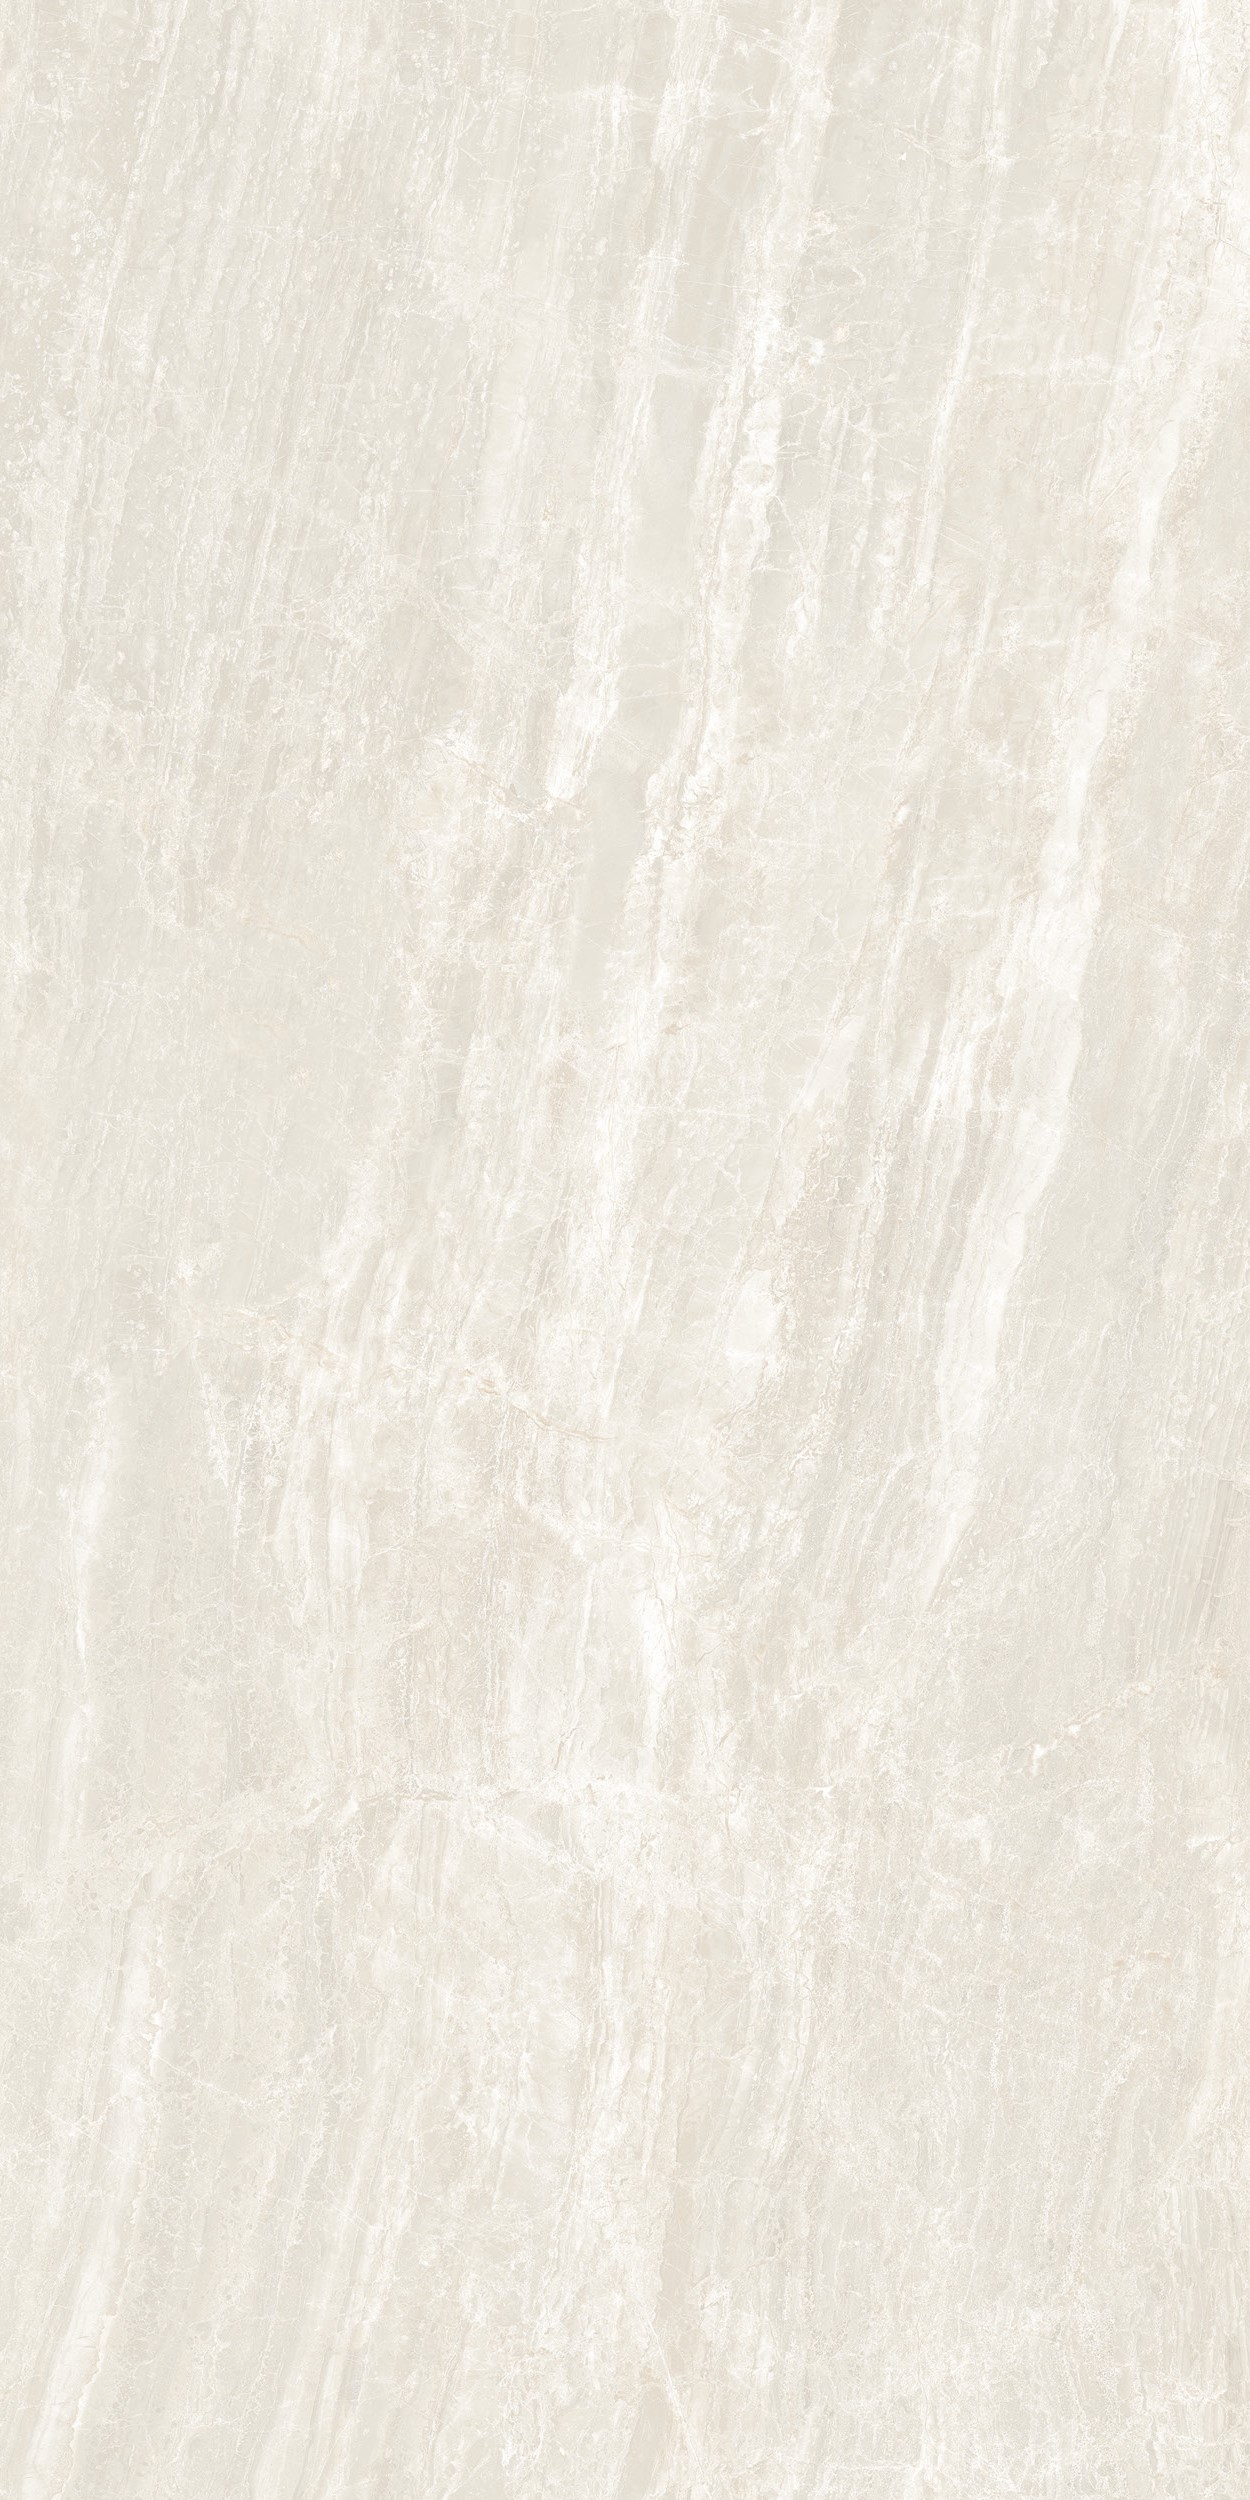 24 X 48 Cosmic White HIGH POLISHED Rectified Porcelain Tile